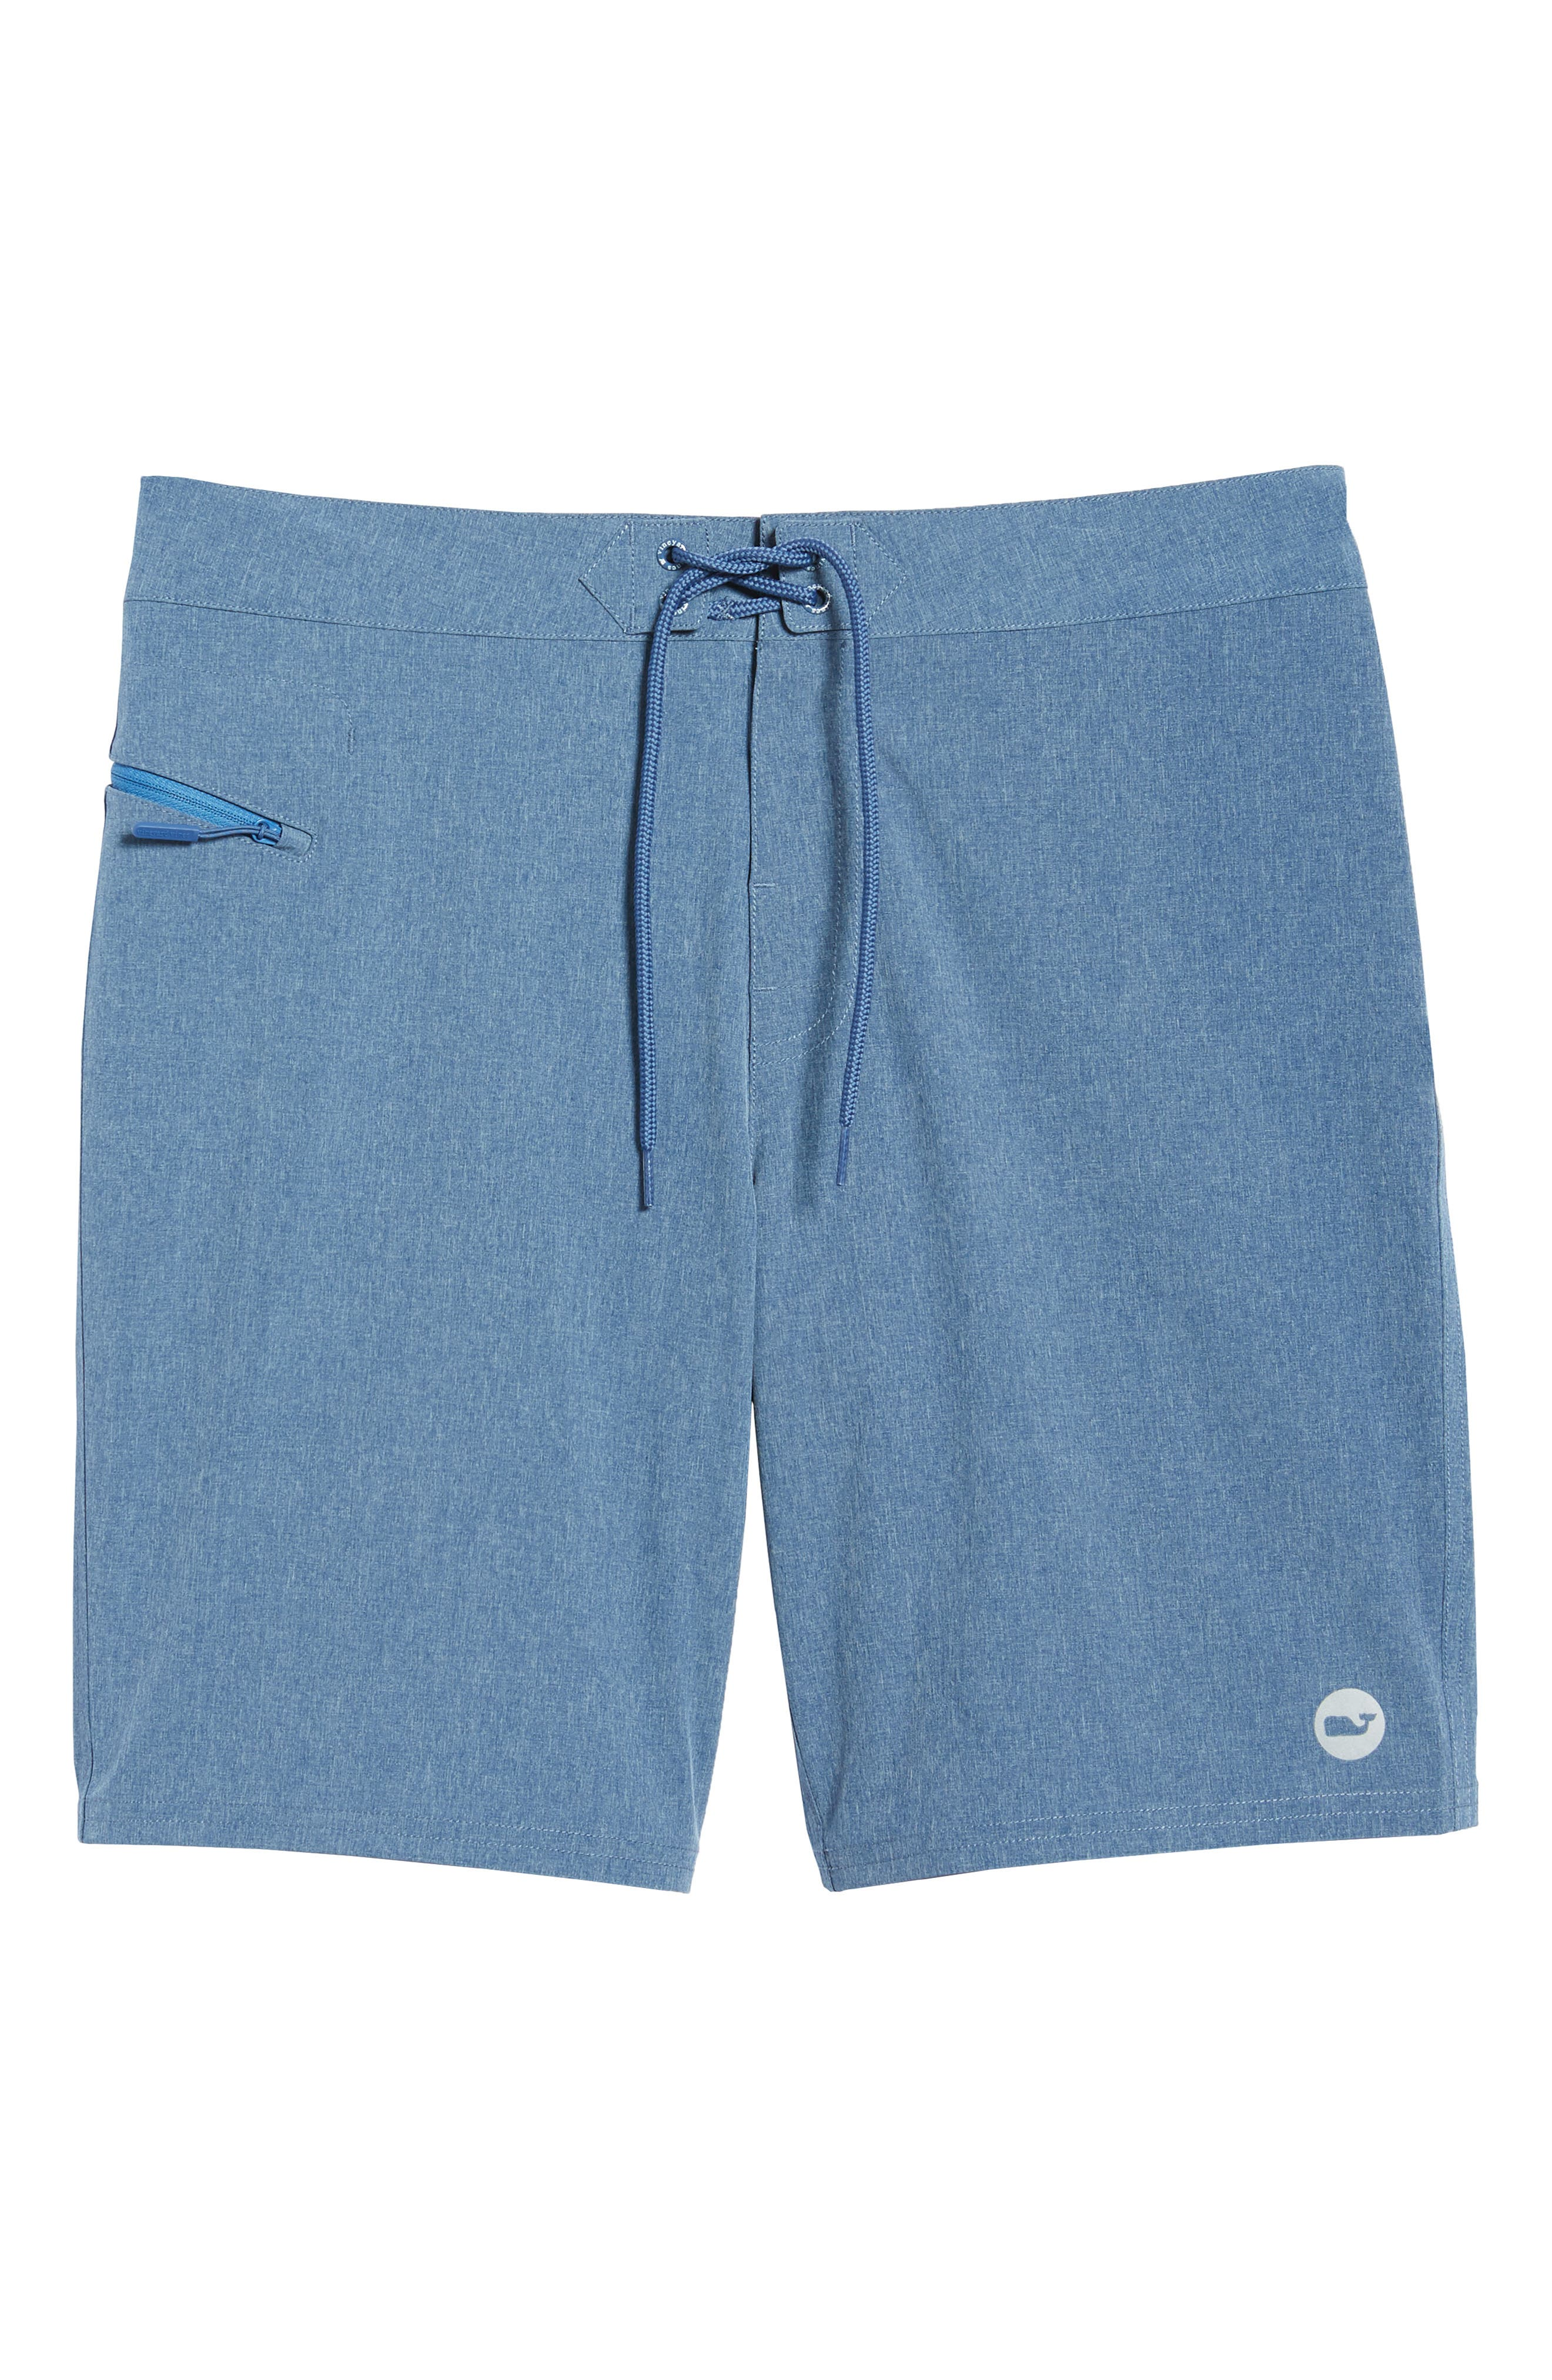 Heather Stretch Board Shorts,                             Alternate thumbnail 21, color,